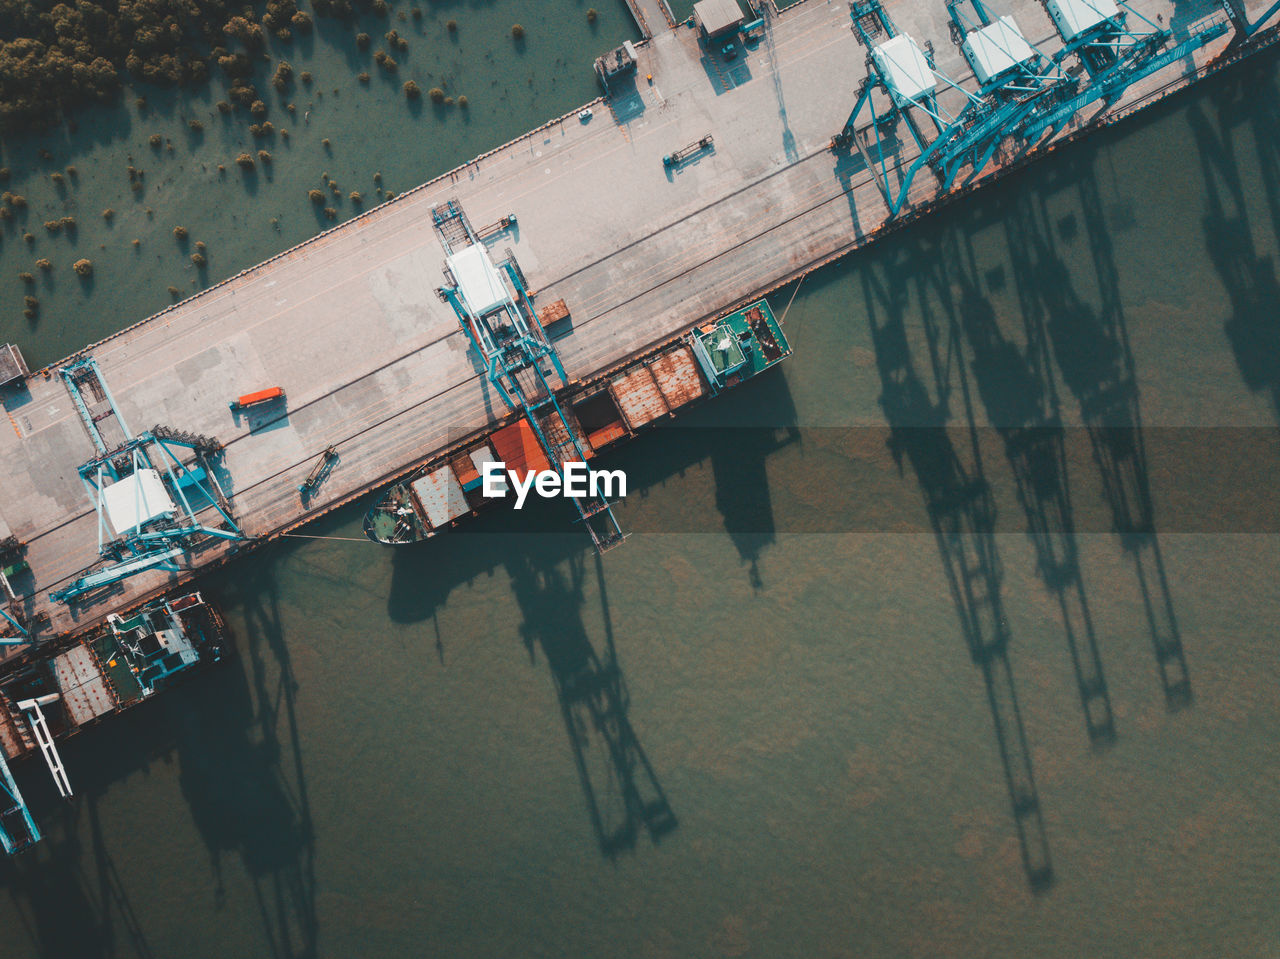 high angle view, day, no people, water, hanging, nature, clothing, built structure, outdoors, architecture, laundry, metal, industry, tilt, wood - material, sunlight, drying, pier, reflection